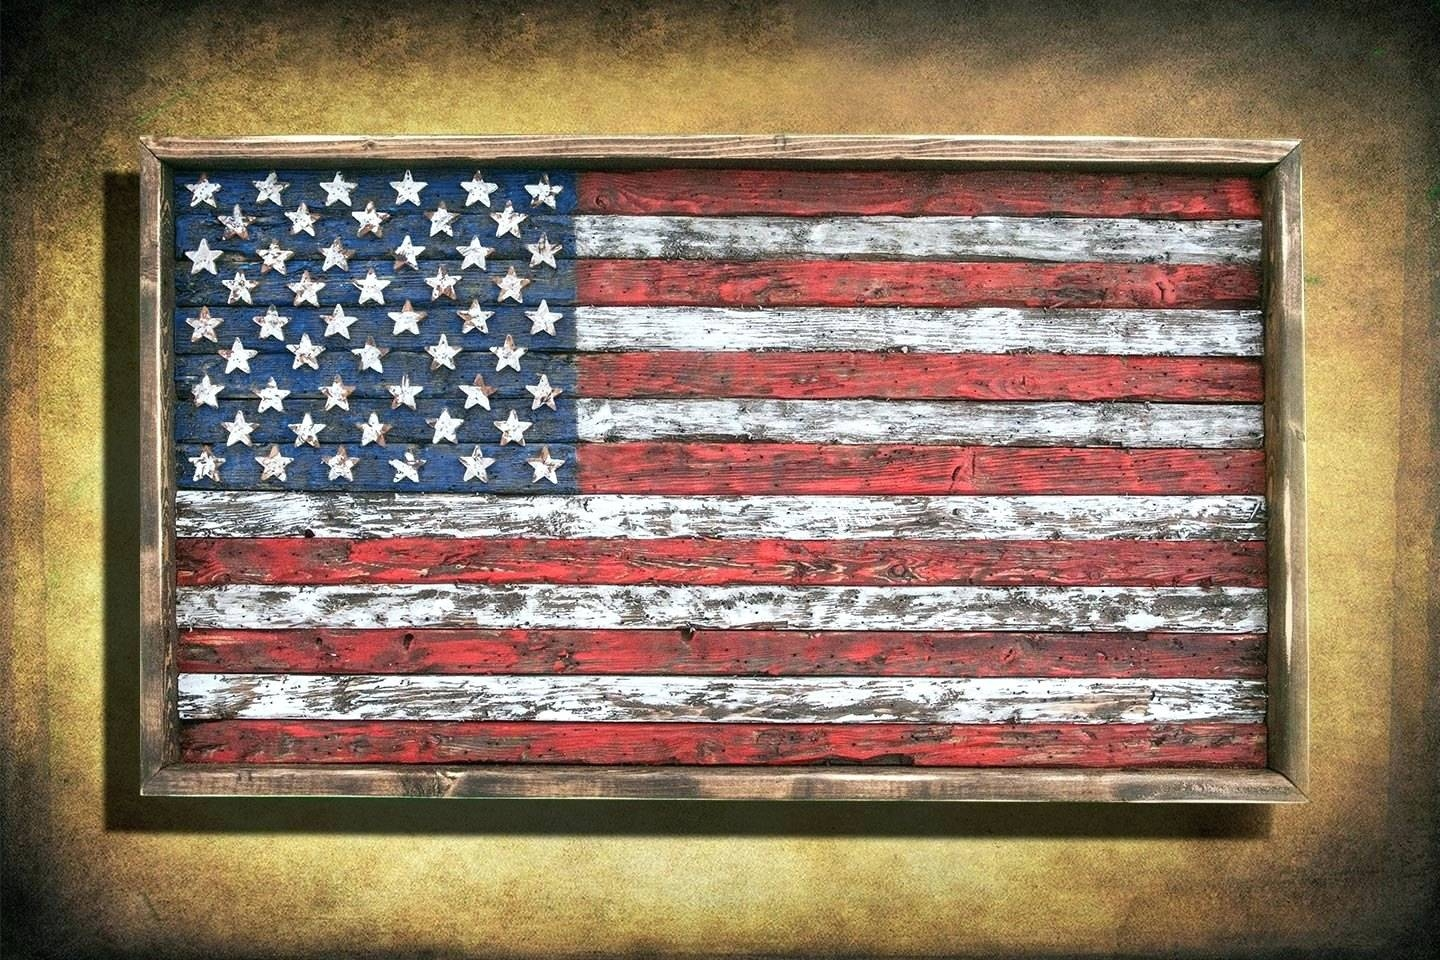 Wall Arts ~ Patriotic Metal Wall Art Appealing Wall Decor Wooden Within Newest American Flag Metal Wall Art (View 16 of 20)